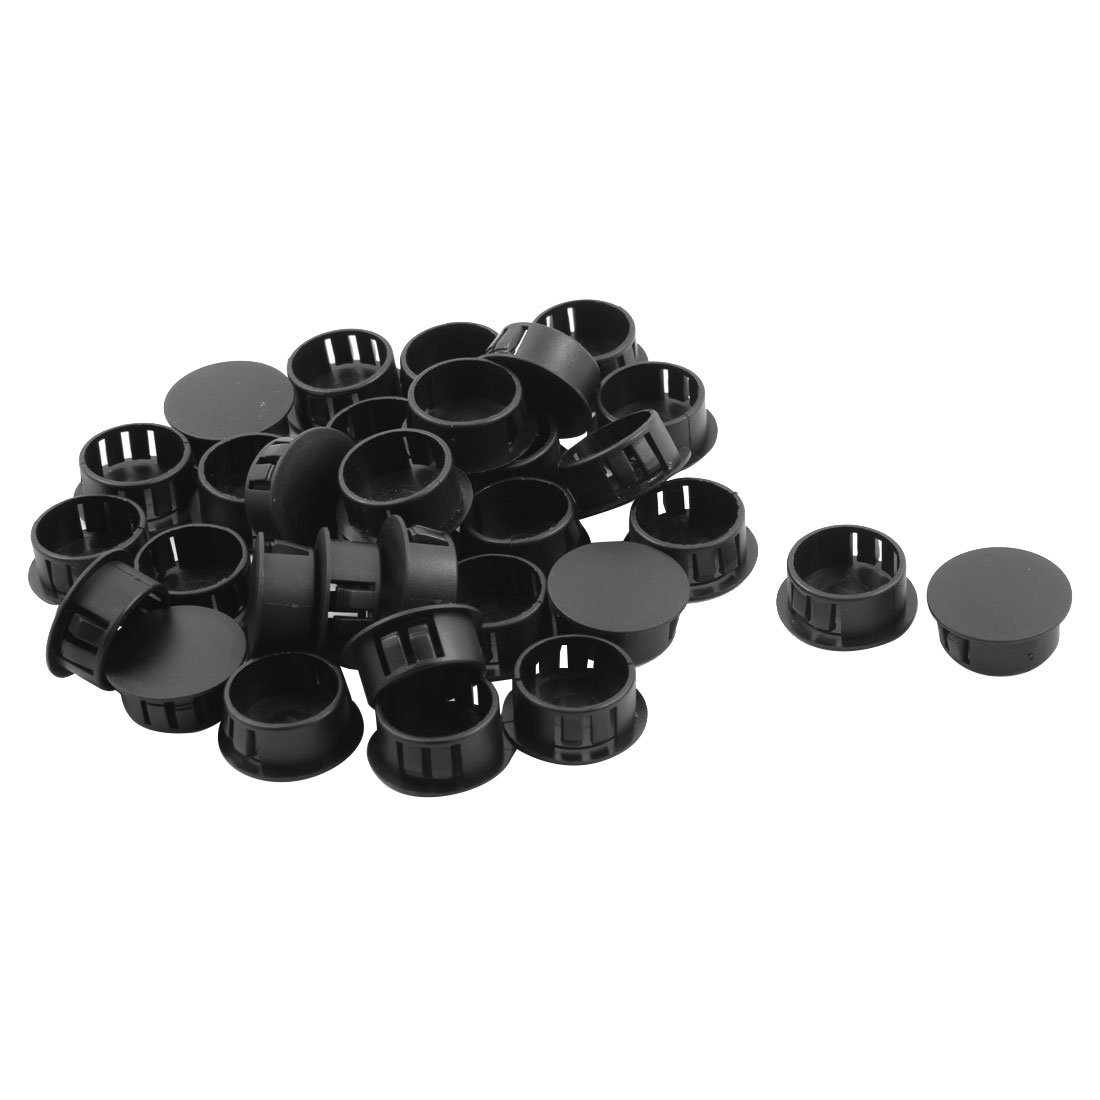 Plastic Round Flush Type Connector Hole Stoppers Covers Black 22mm Fit Dia 32pcs